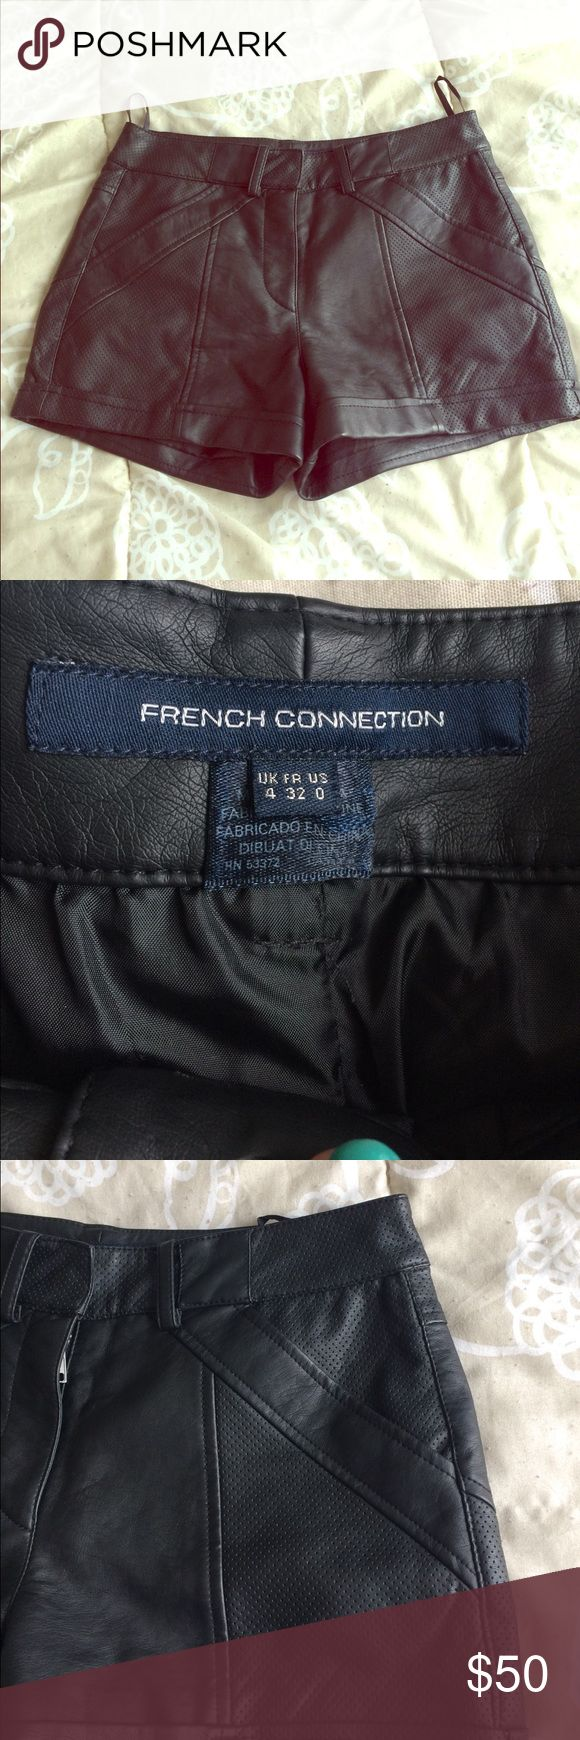 Never worn French Connection leather shorts! Repost, received NWOT, unfortunately a bit too big. Size 0. French Connection Shorts